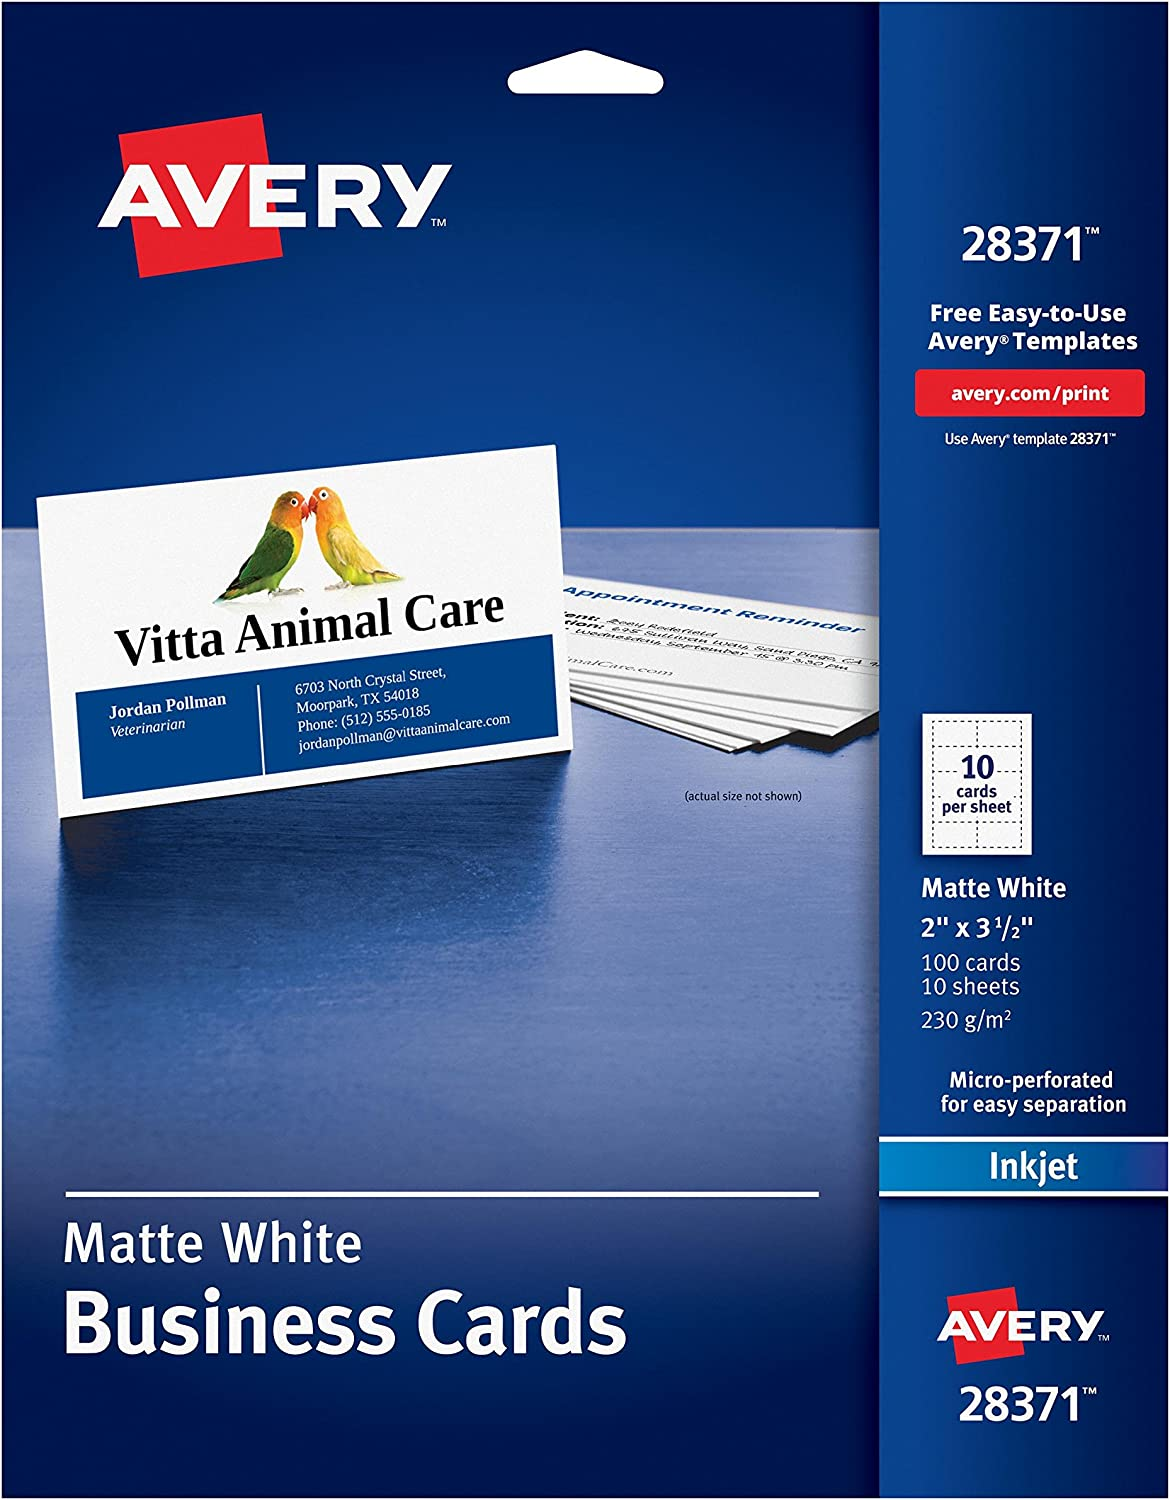 Avery Ink-Jet Printer White Business Cards (28371) : Pipe Fittings : Computers & Accessories